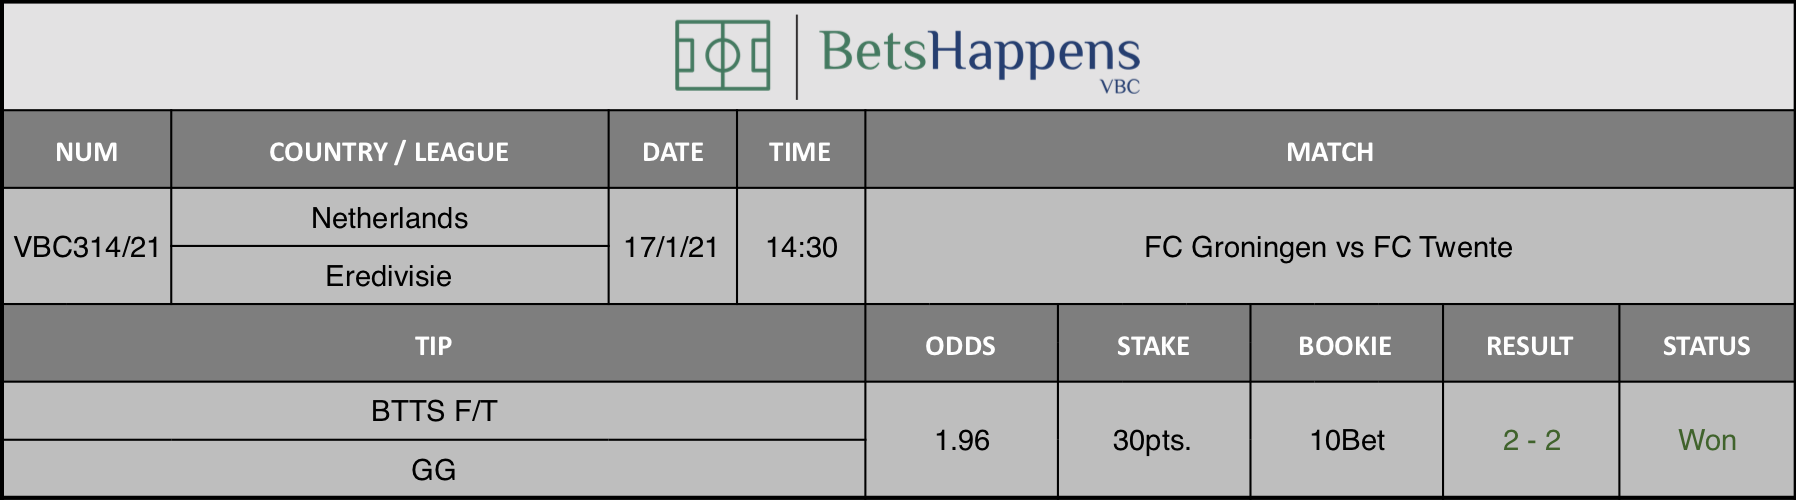 Results of our tip for the FC Groningen vs FC Twente match where BTTS F/T  GG is recommended.